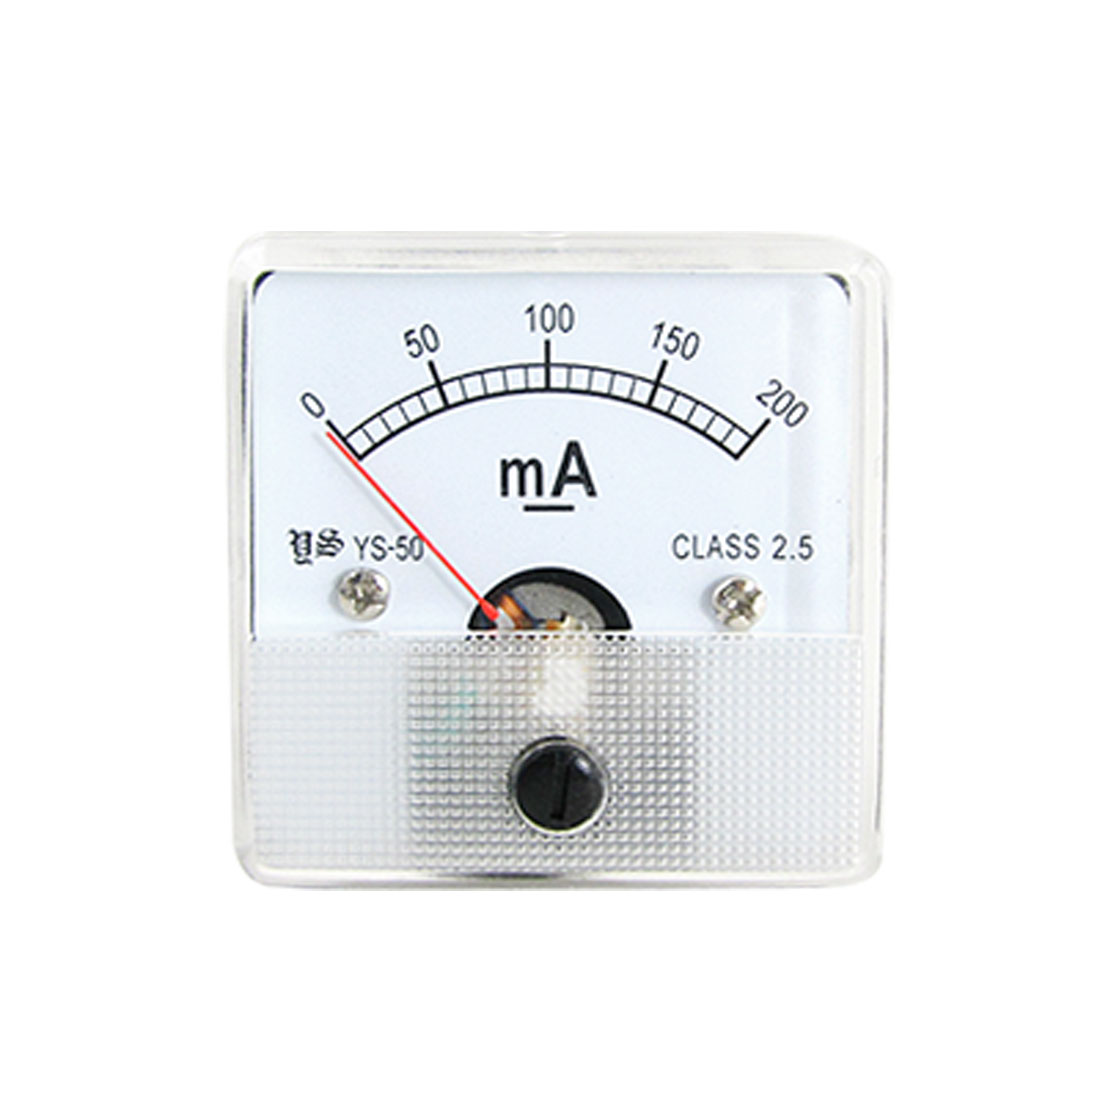 Class 2.5 DC 0-200mA Analog Ampere Meter Measuring Head